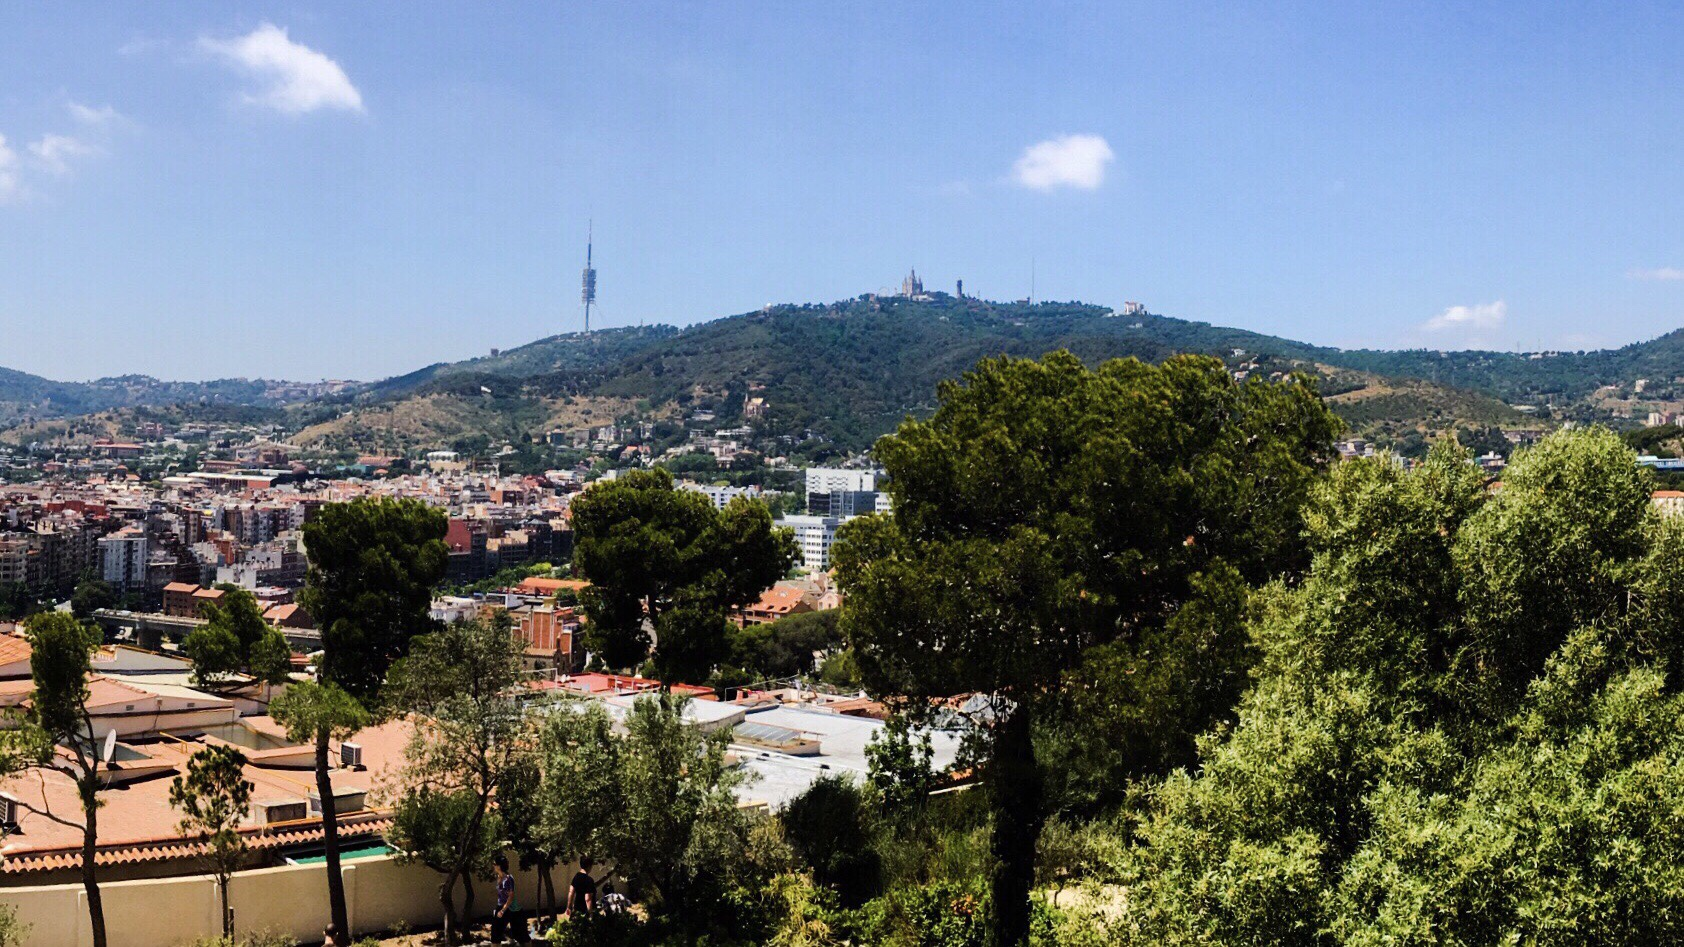 Tibidabo on the hill; view from Park Quell, Barcelona